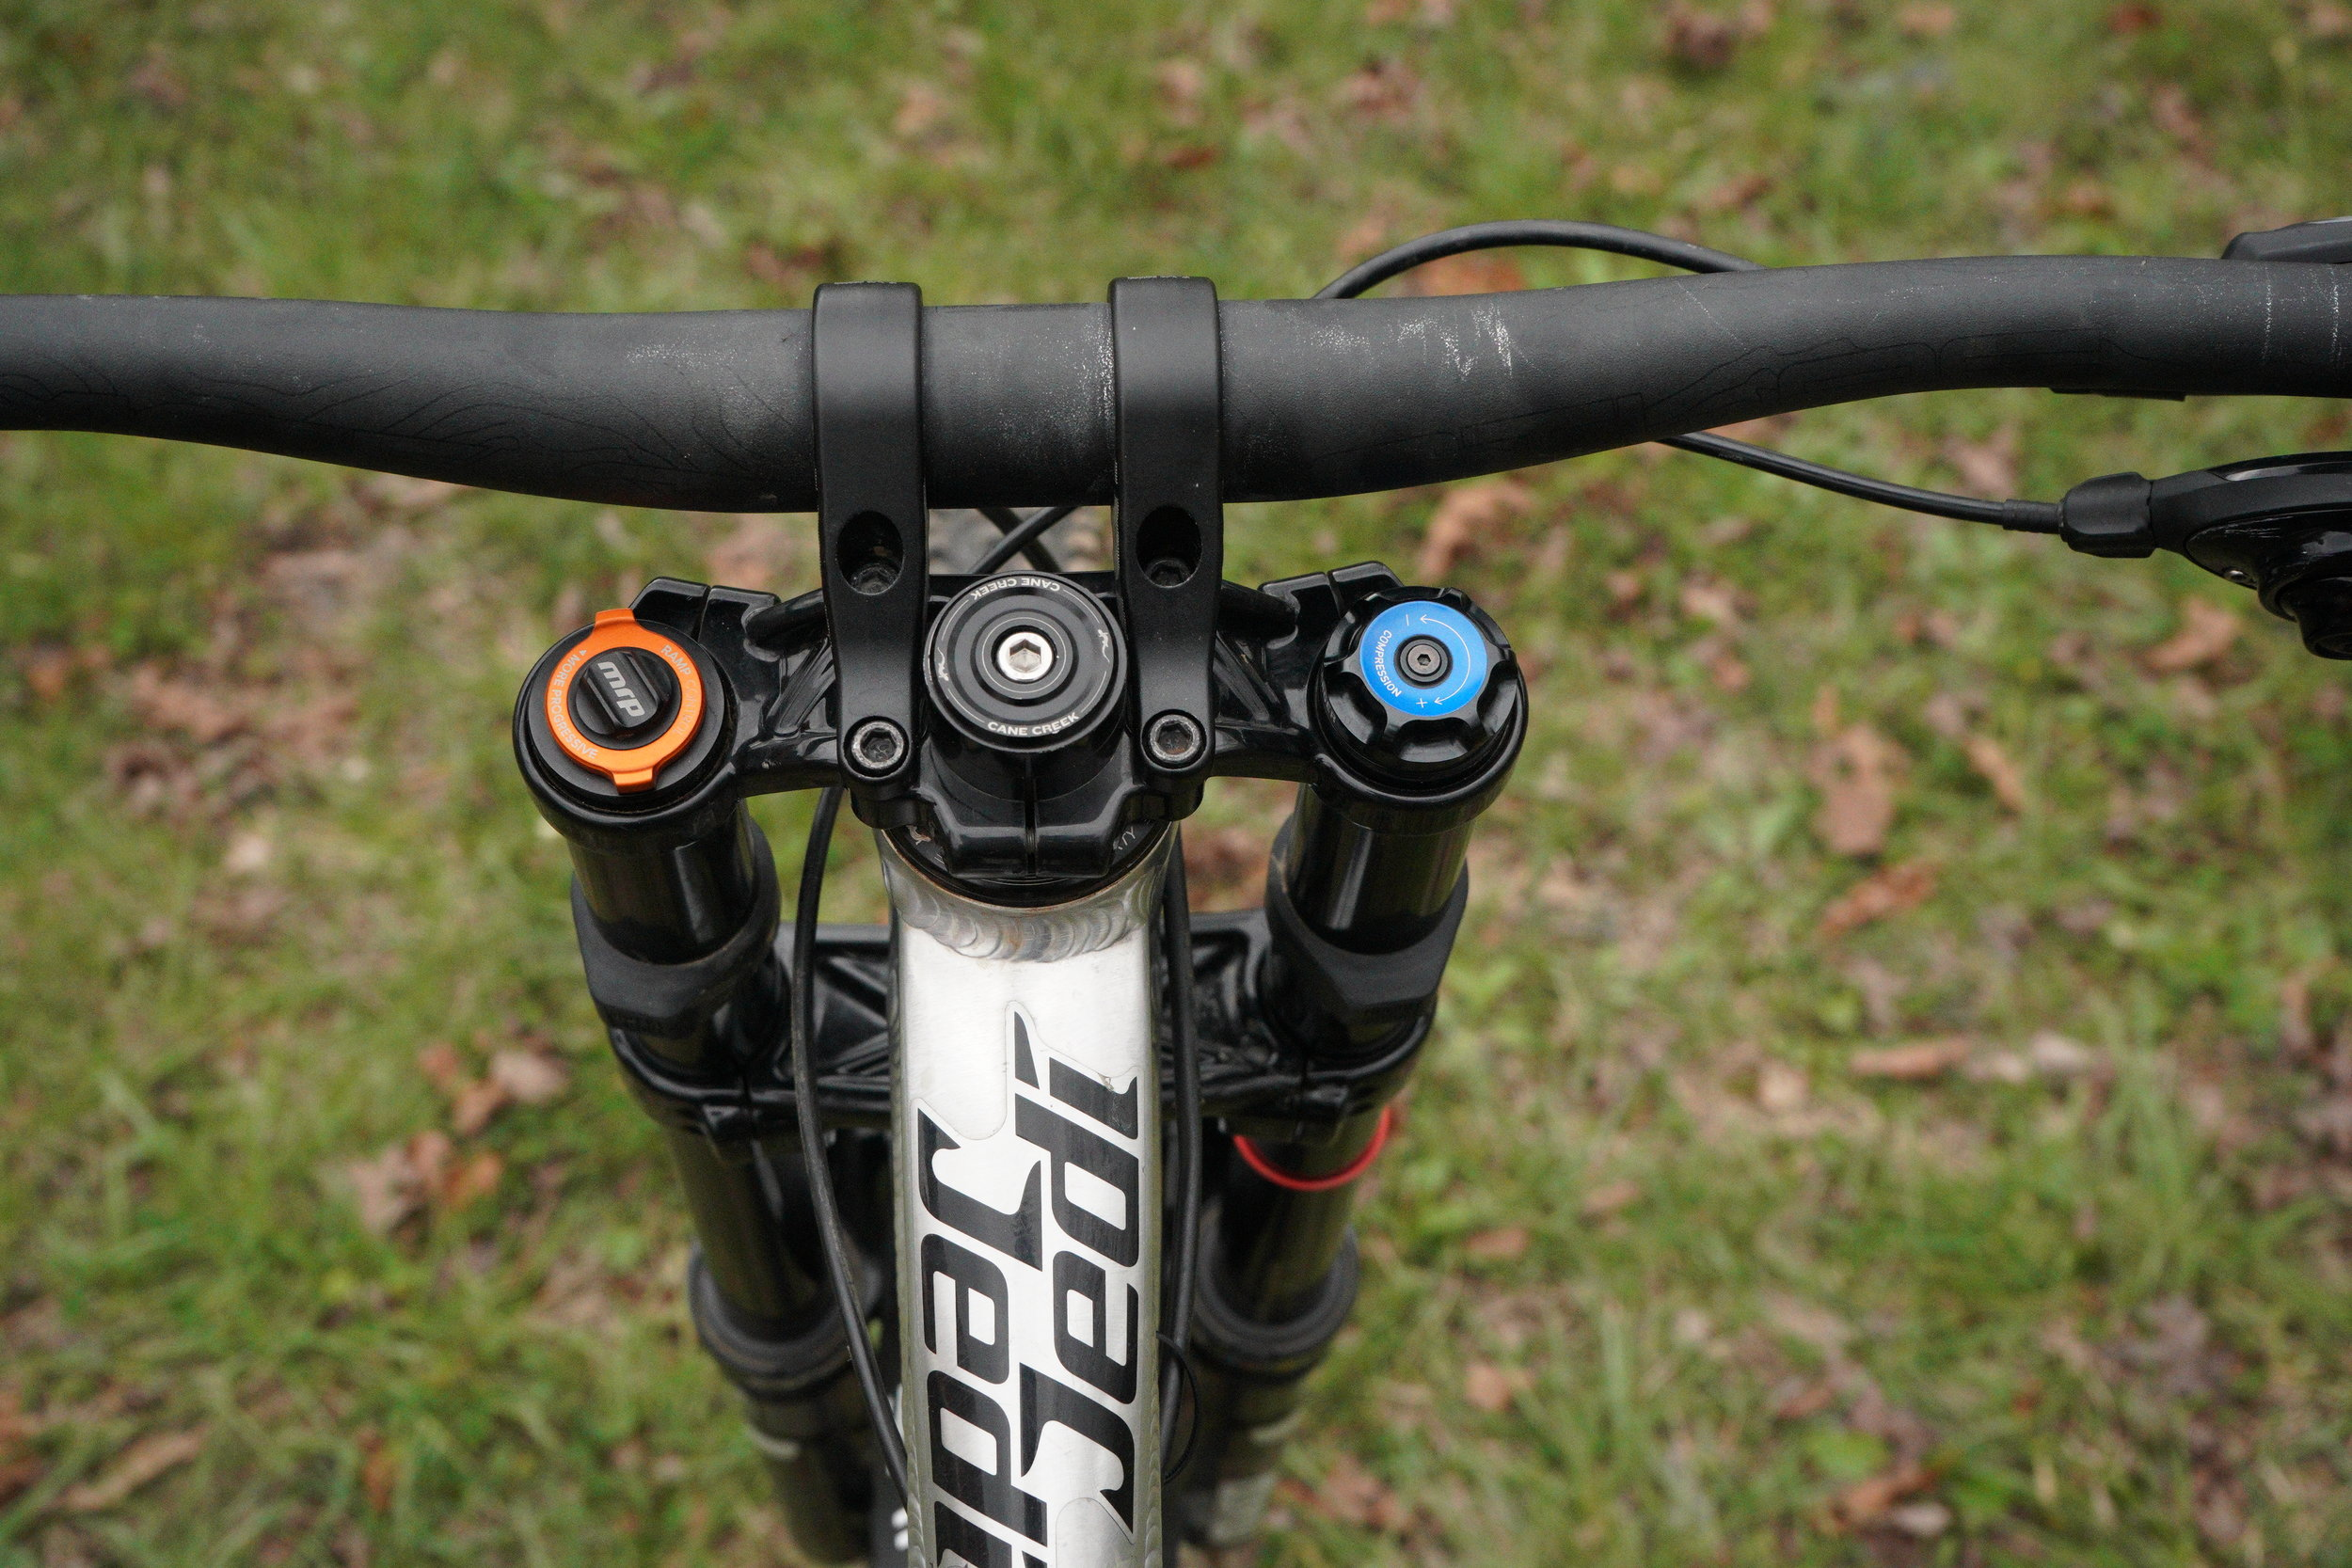 Up front Ethan has his Rockshox Boxxer World Cup. He has opted for the MRP Ramp Control Cartridge in the air side of the fork. With this, Ethan is able to change how progressive the fork is on the fly with no tools or plastic spacers needed.